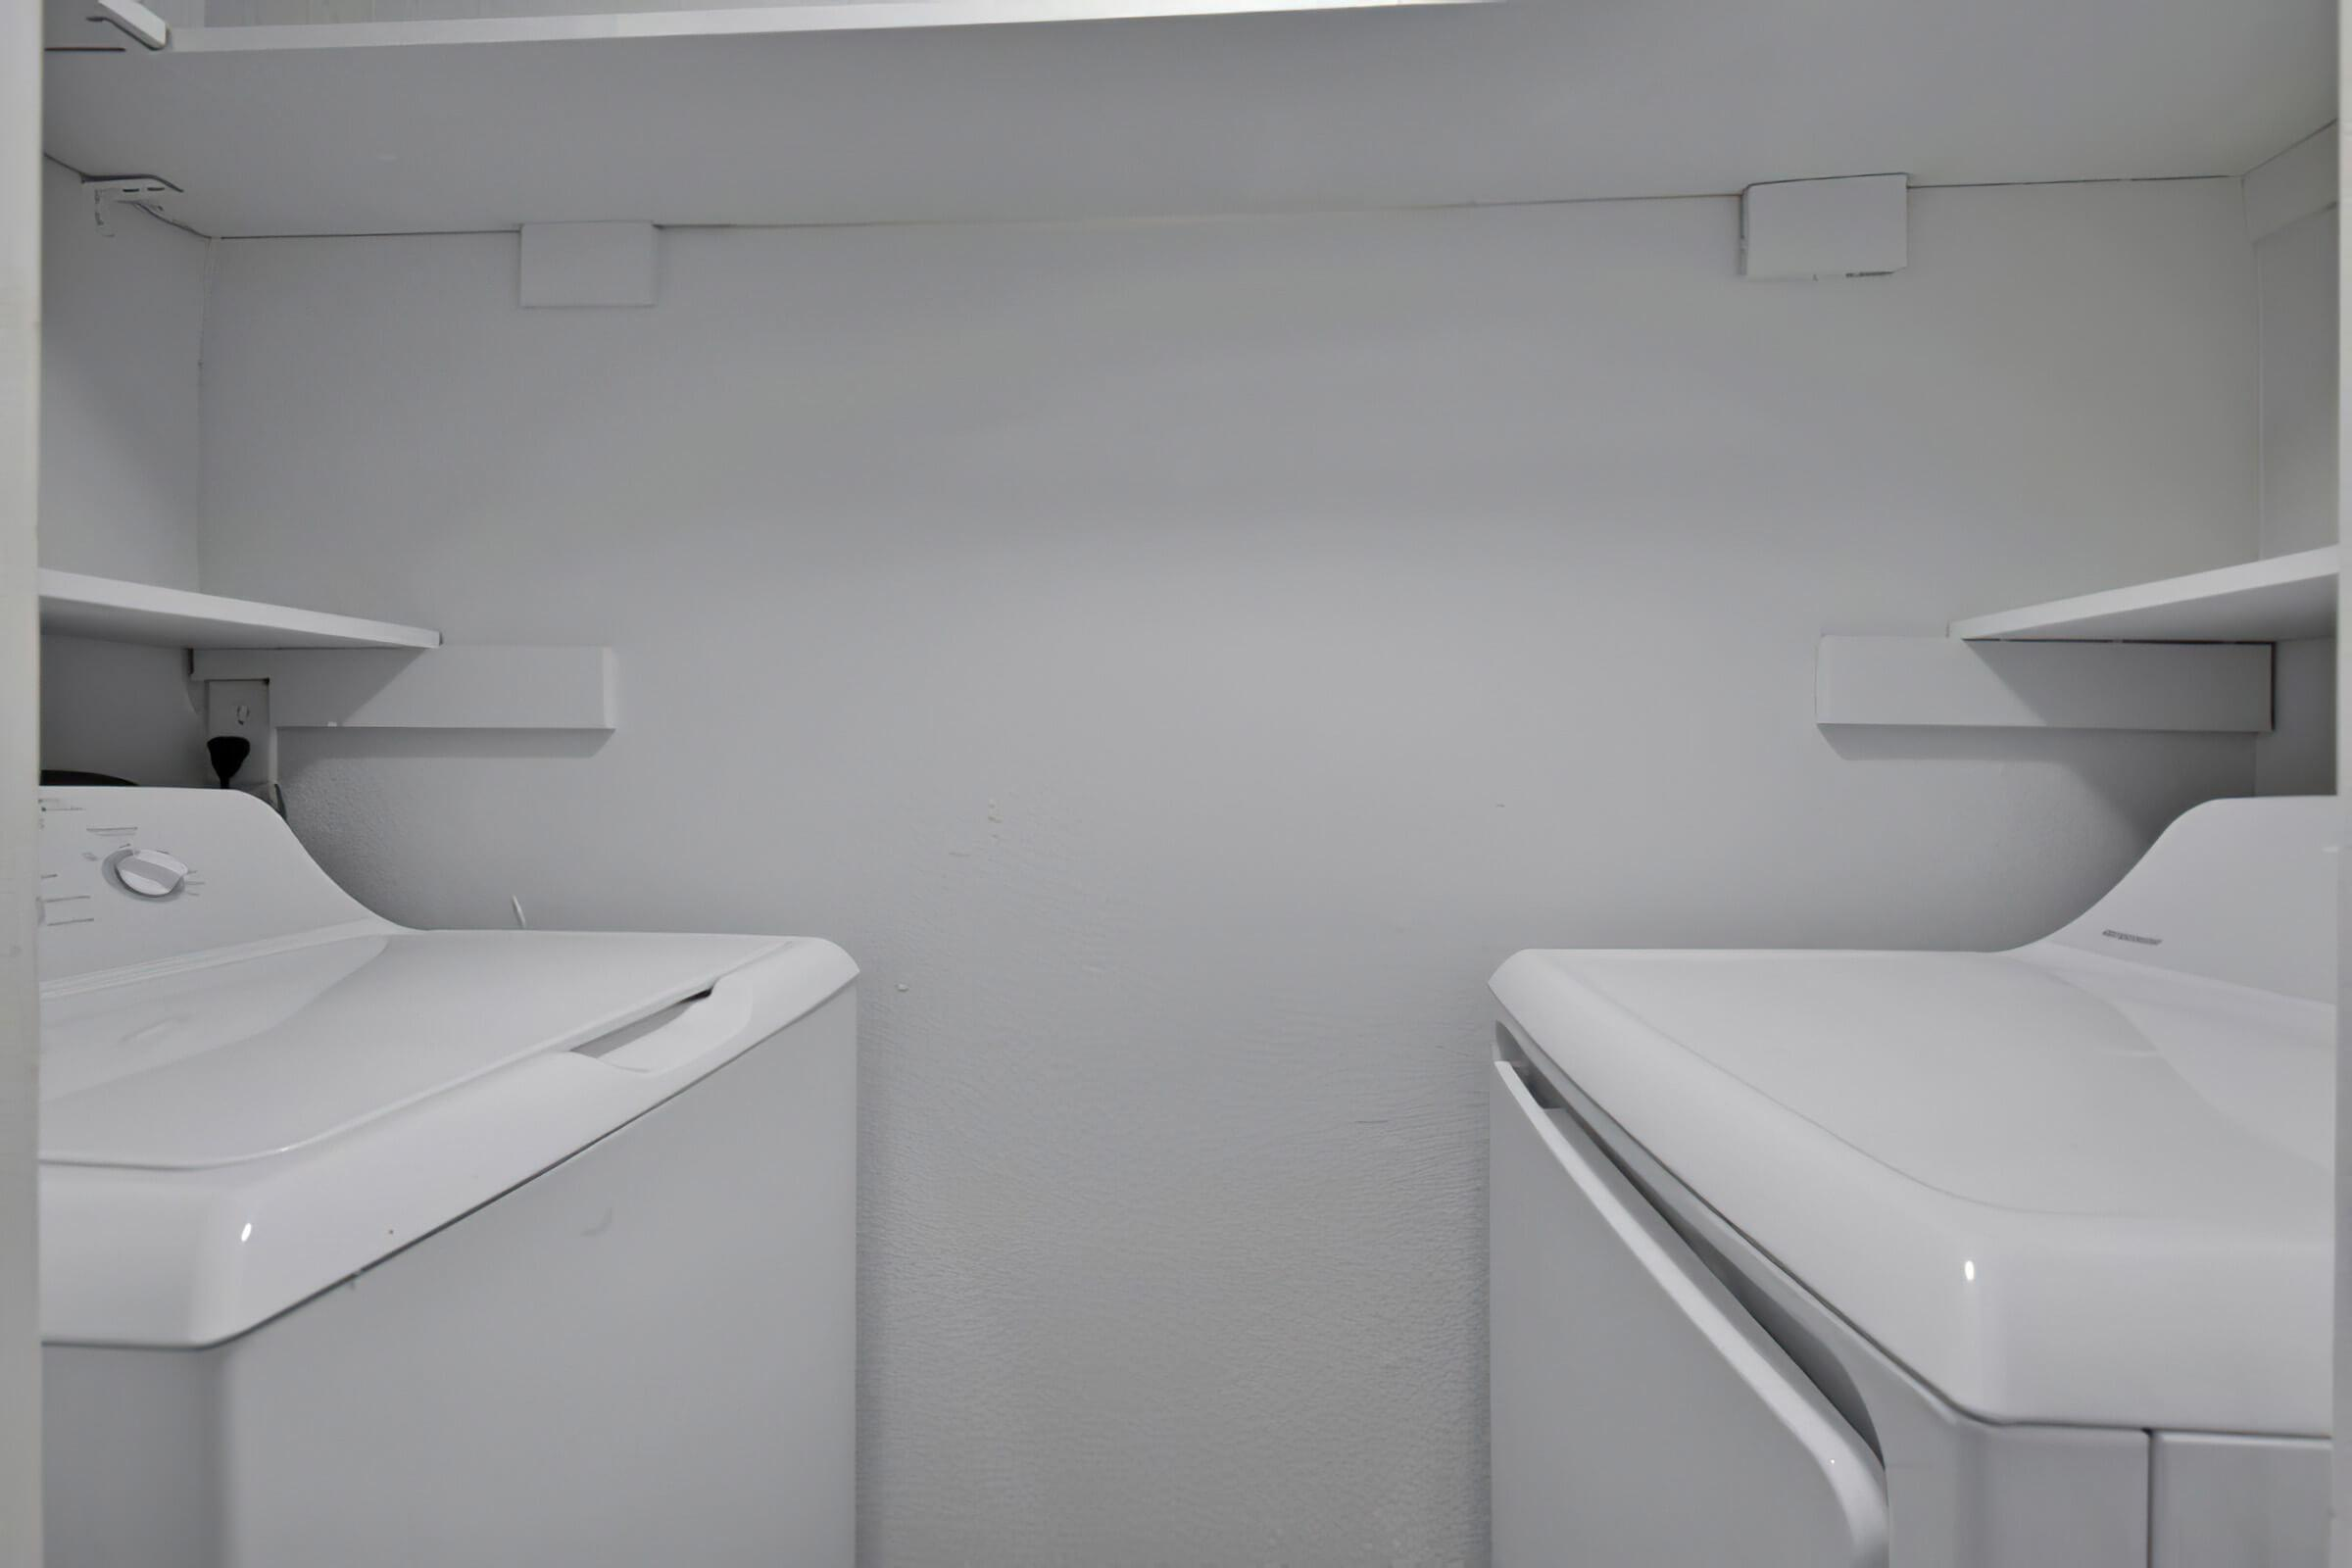 a view of a sink